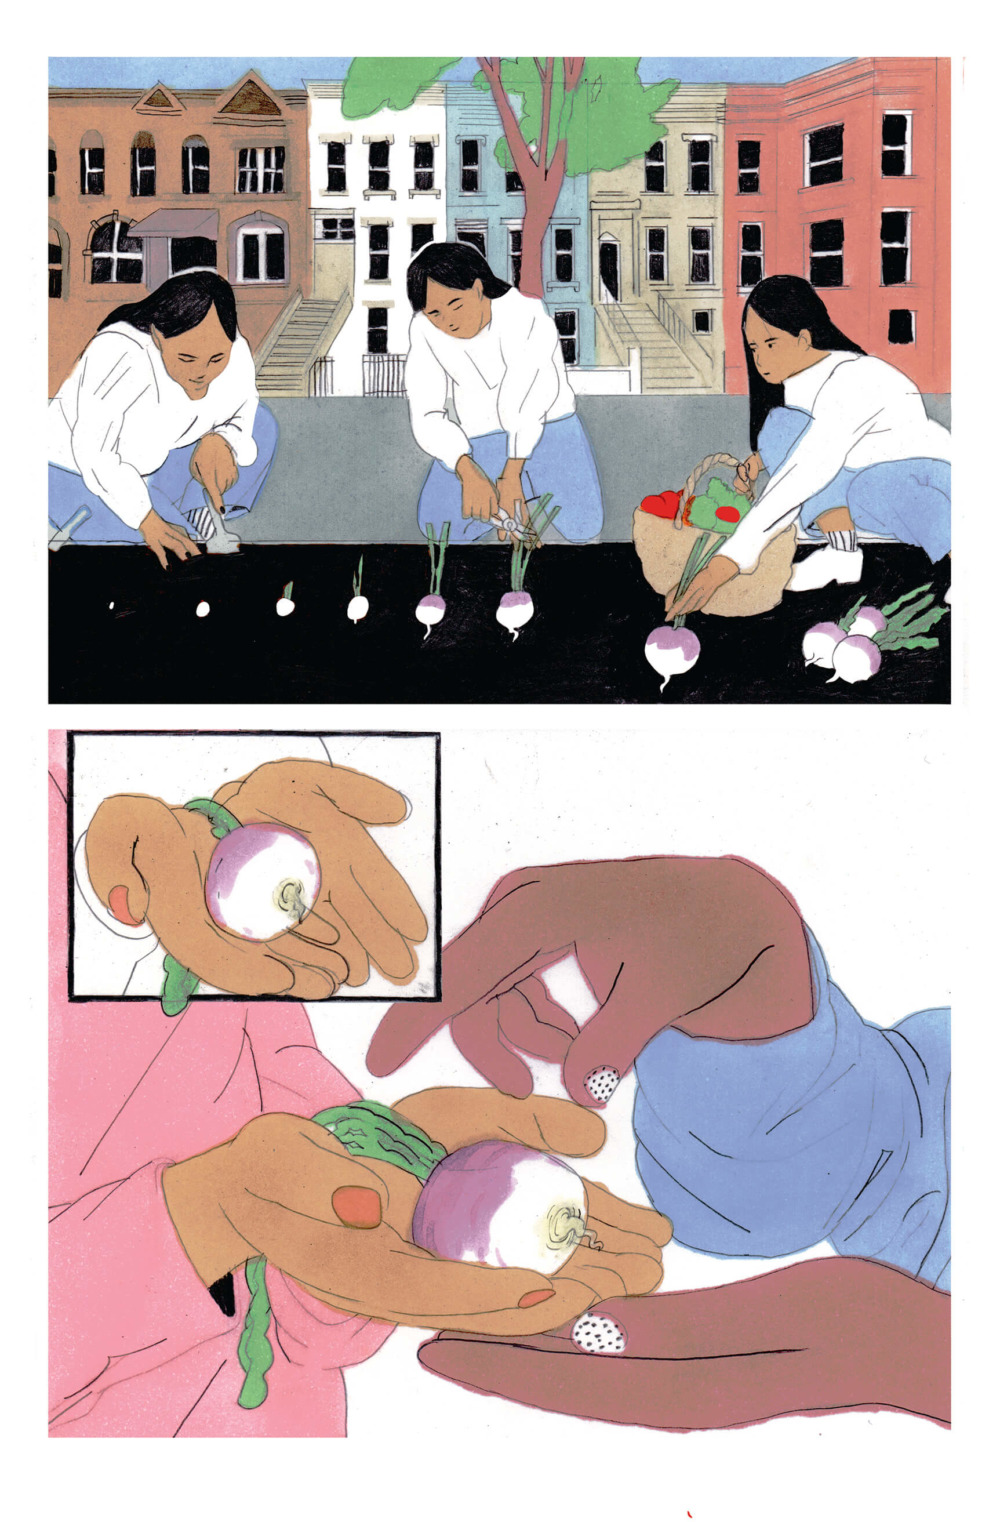 Split into two frames, the top half is three women planting turnips in an urban setting. The bottom half are hands holding turnips with open palms.